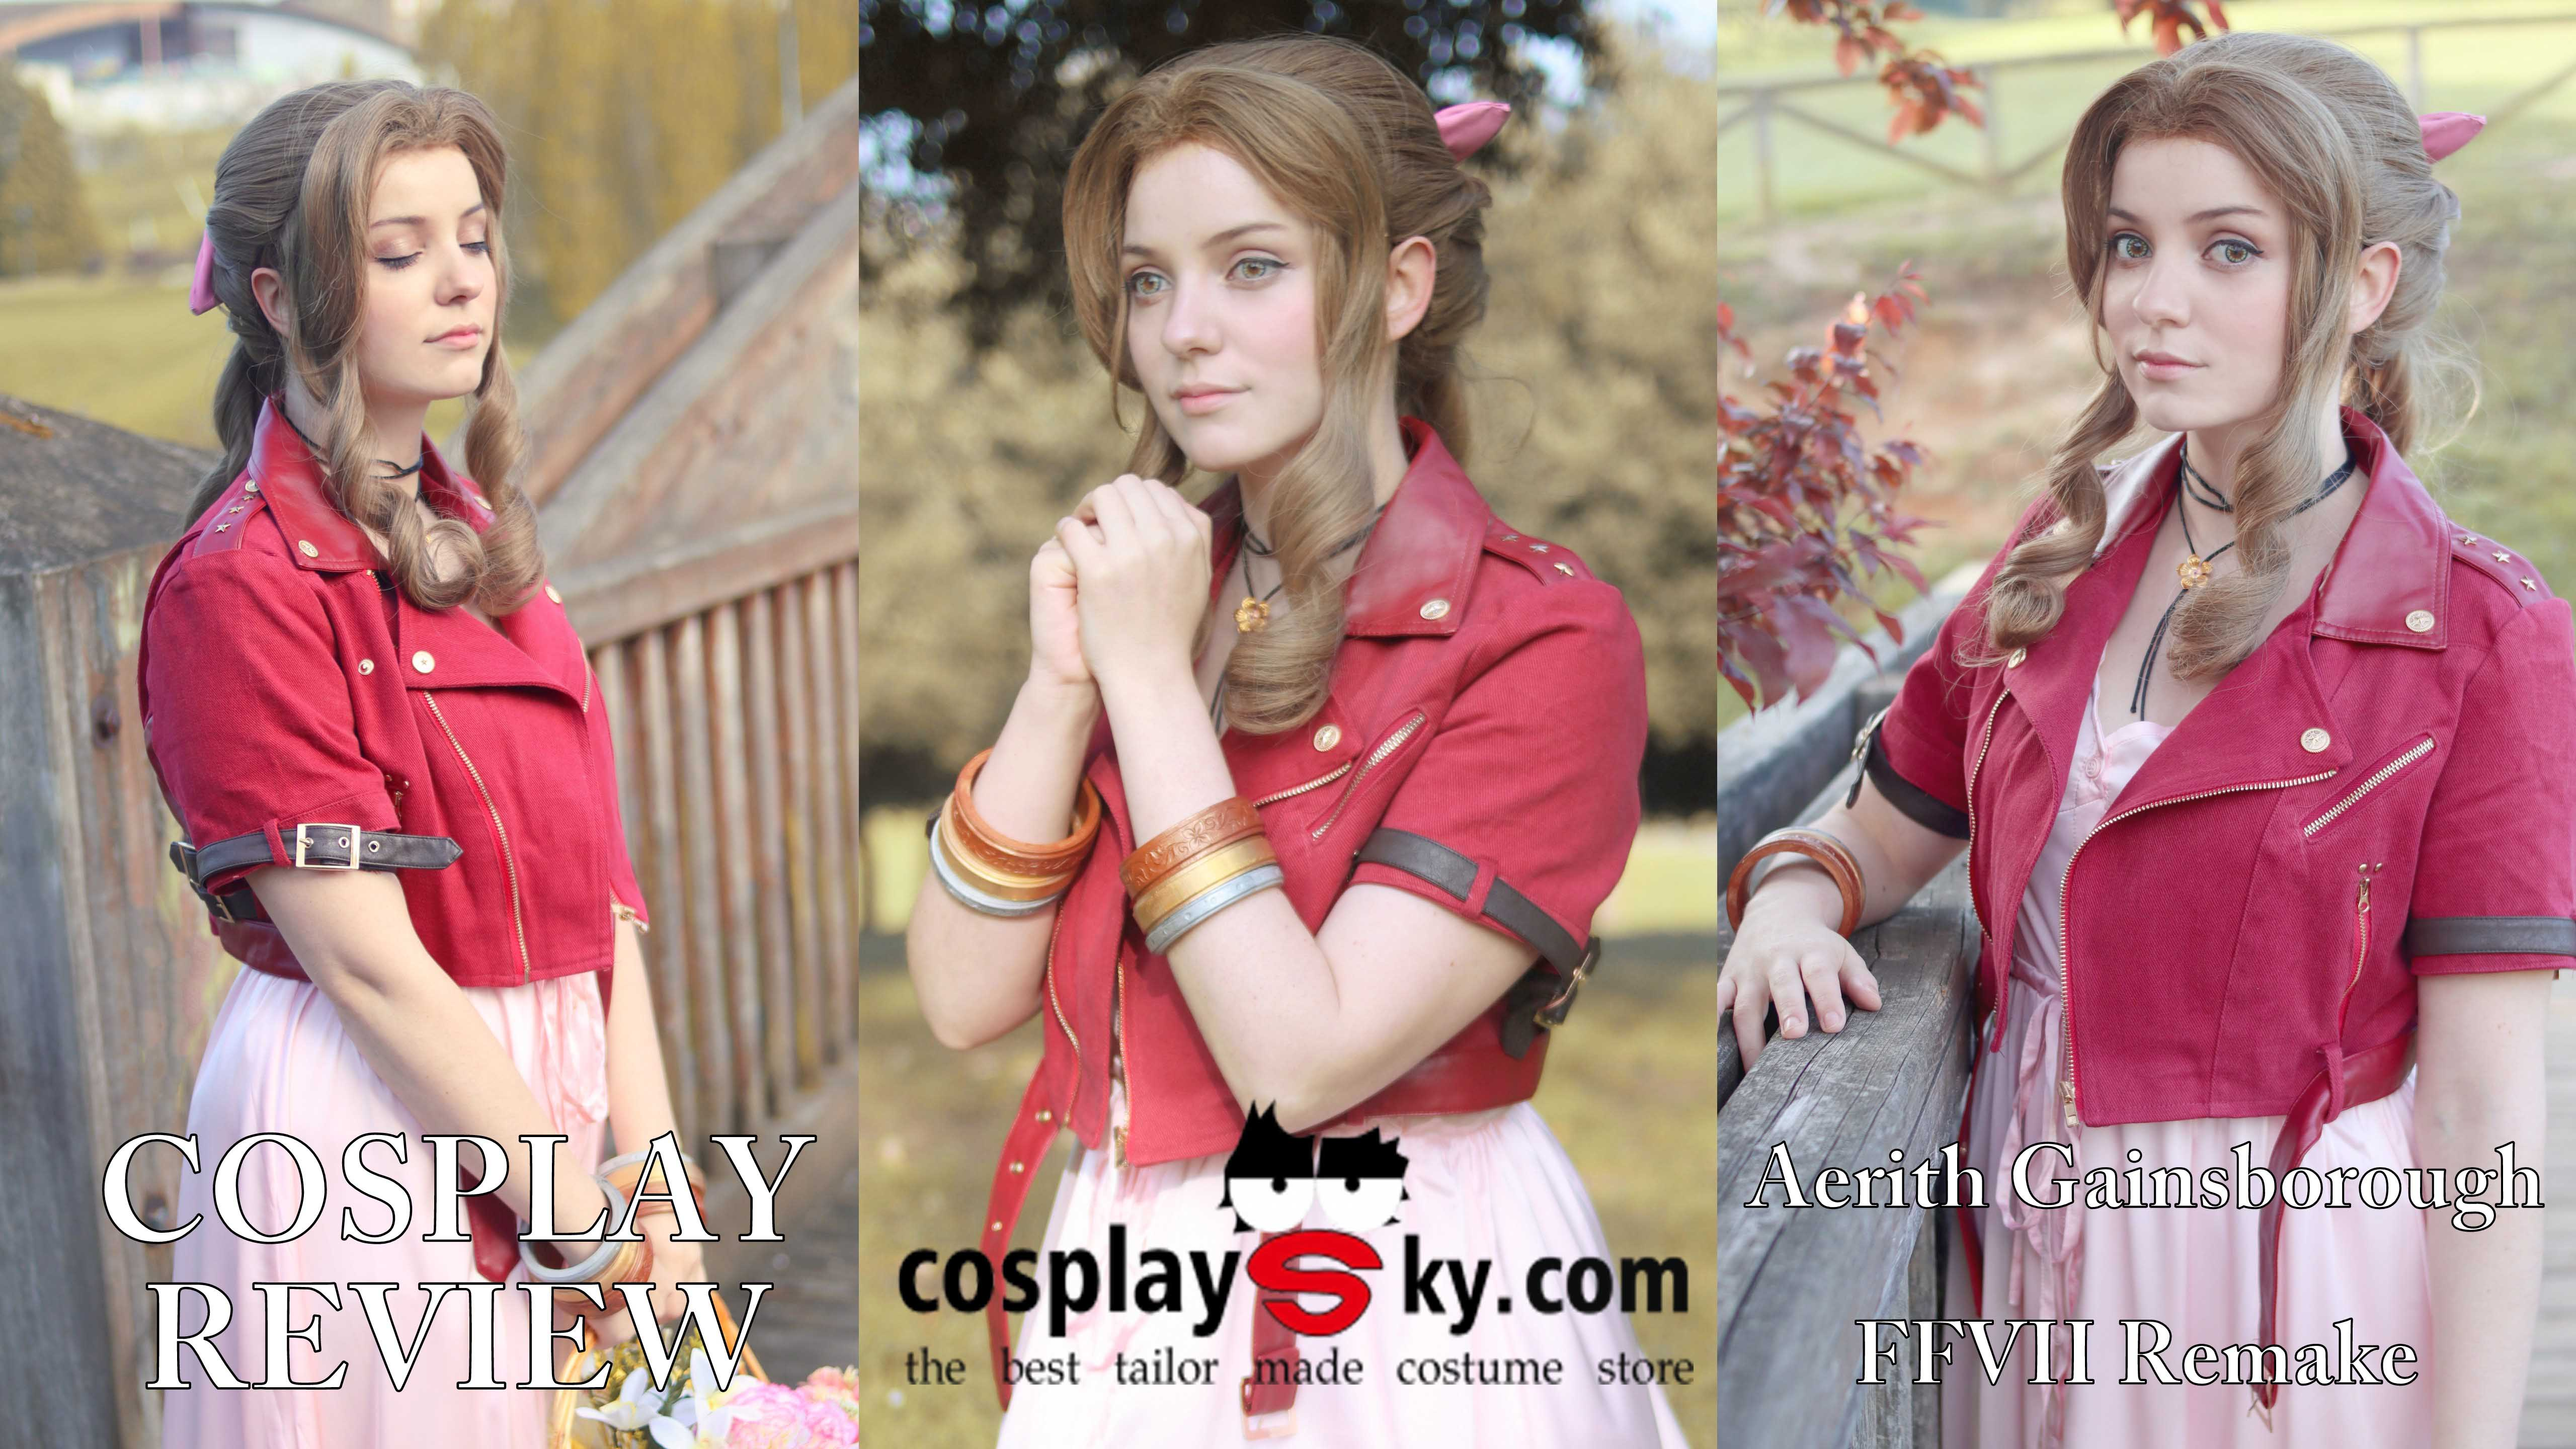 Cosplay Review: Aerith Gainsborough (Final Fantasy VII Remake) from Cosplaysky